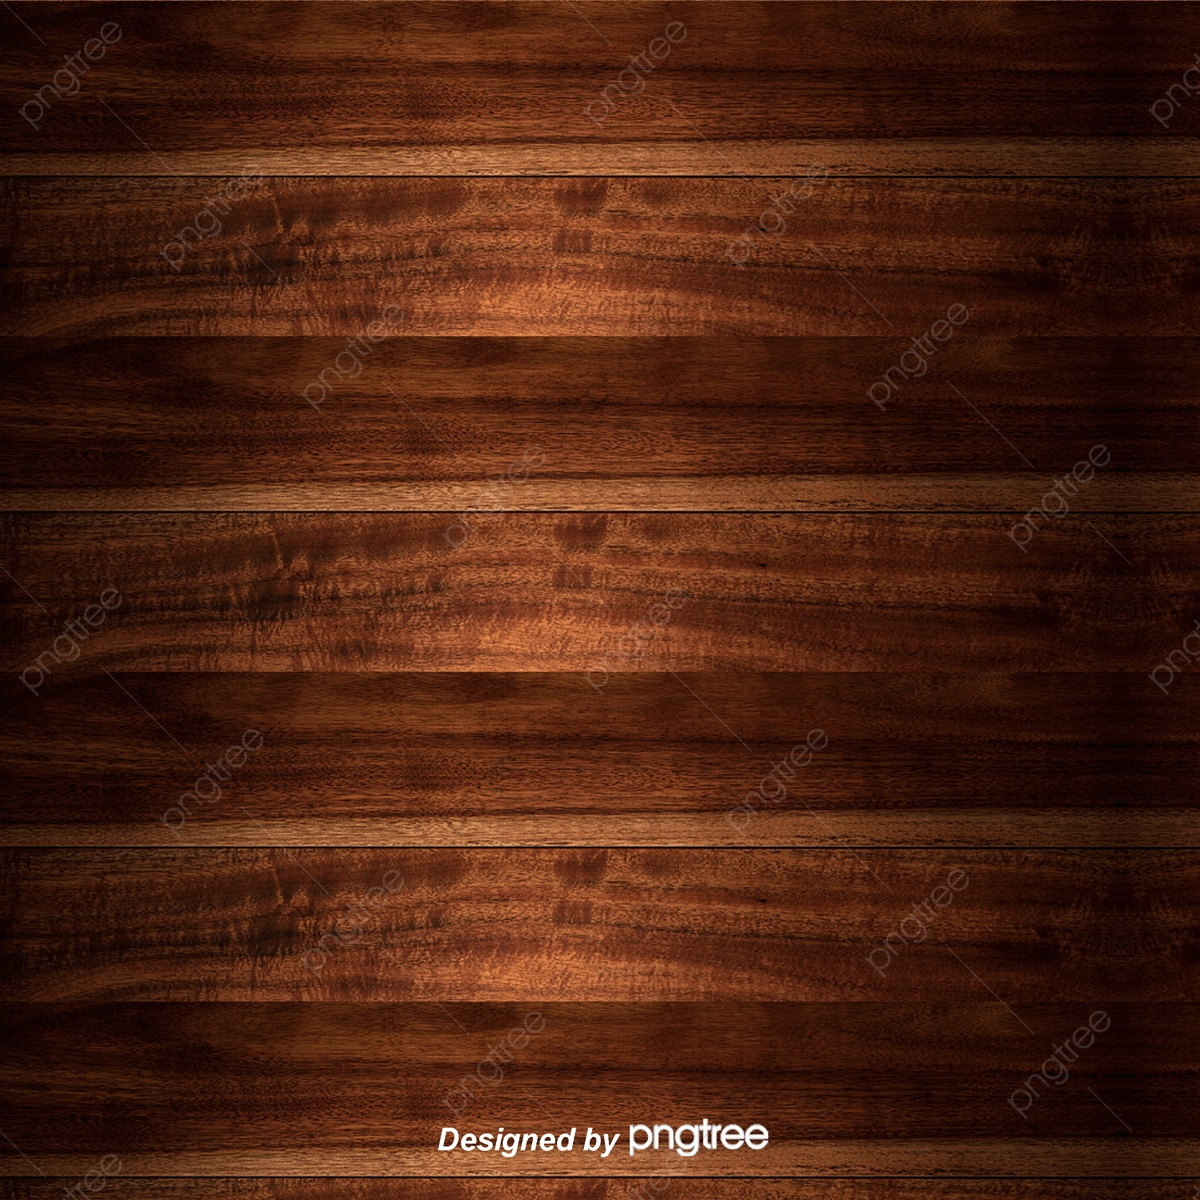 Wood Background Png, Vector, PSD, And Clipart With